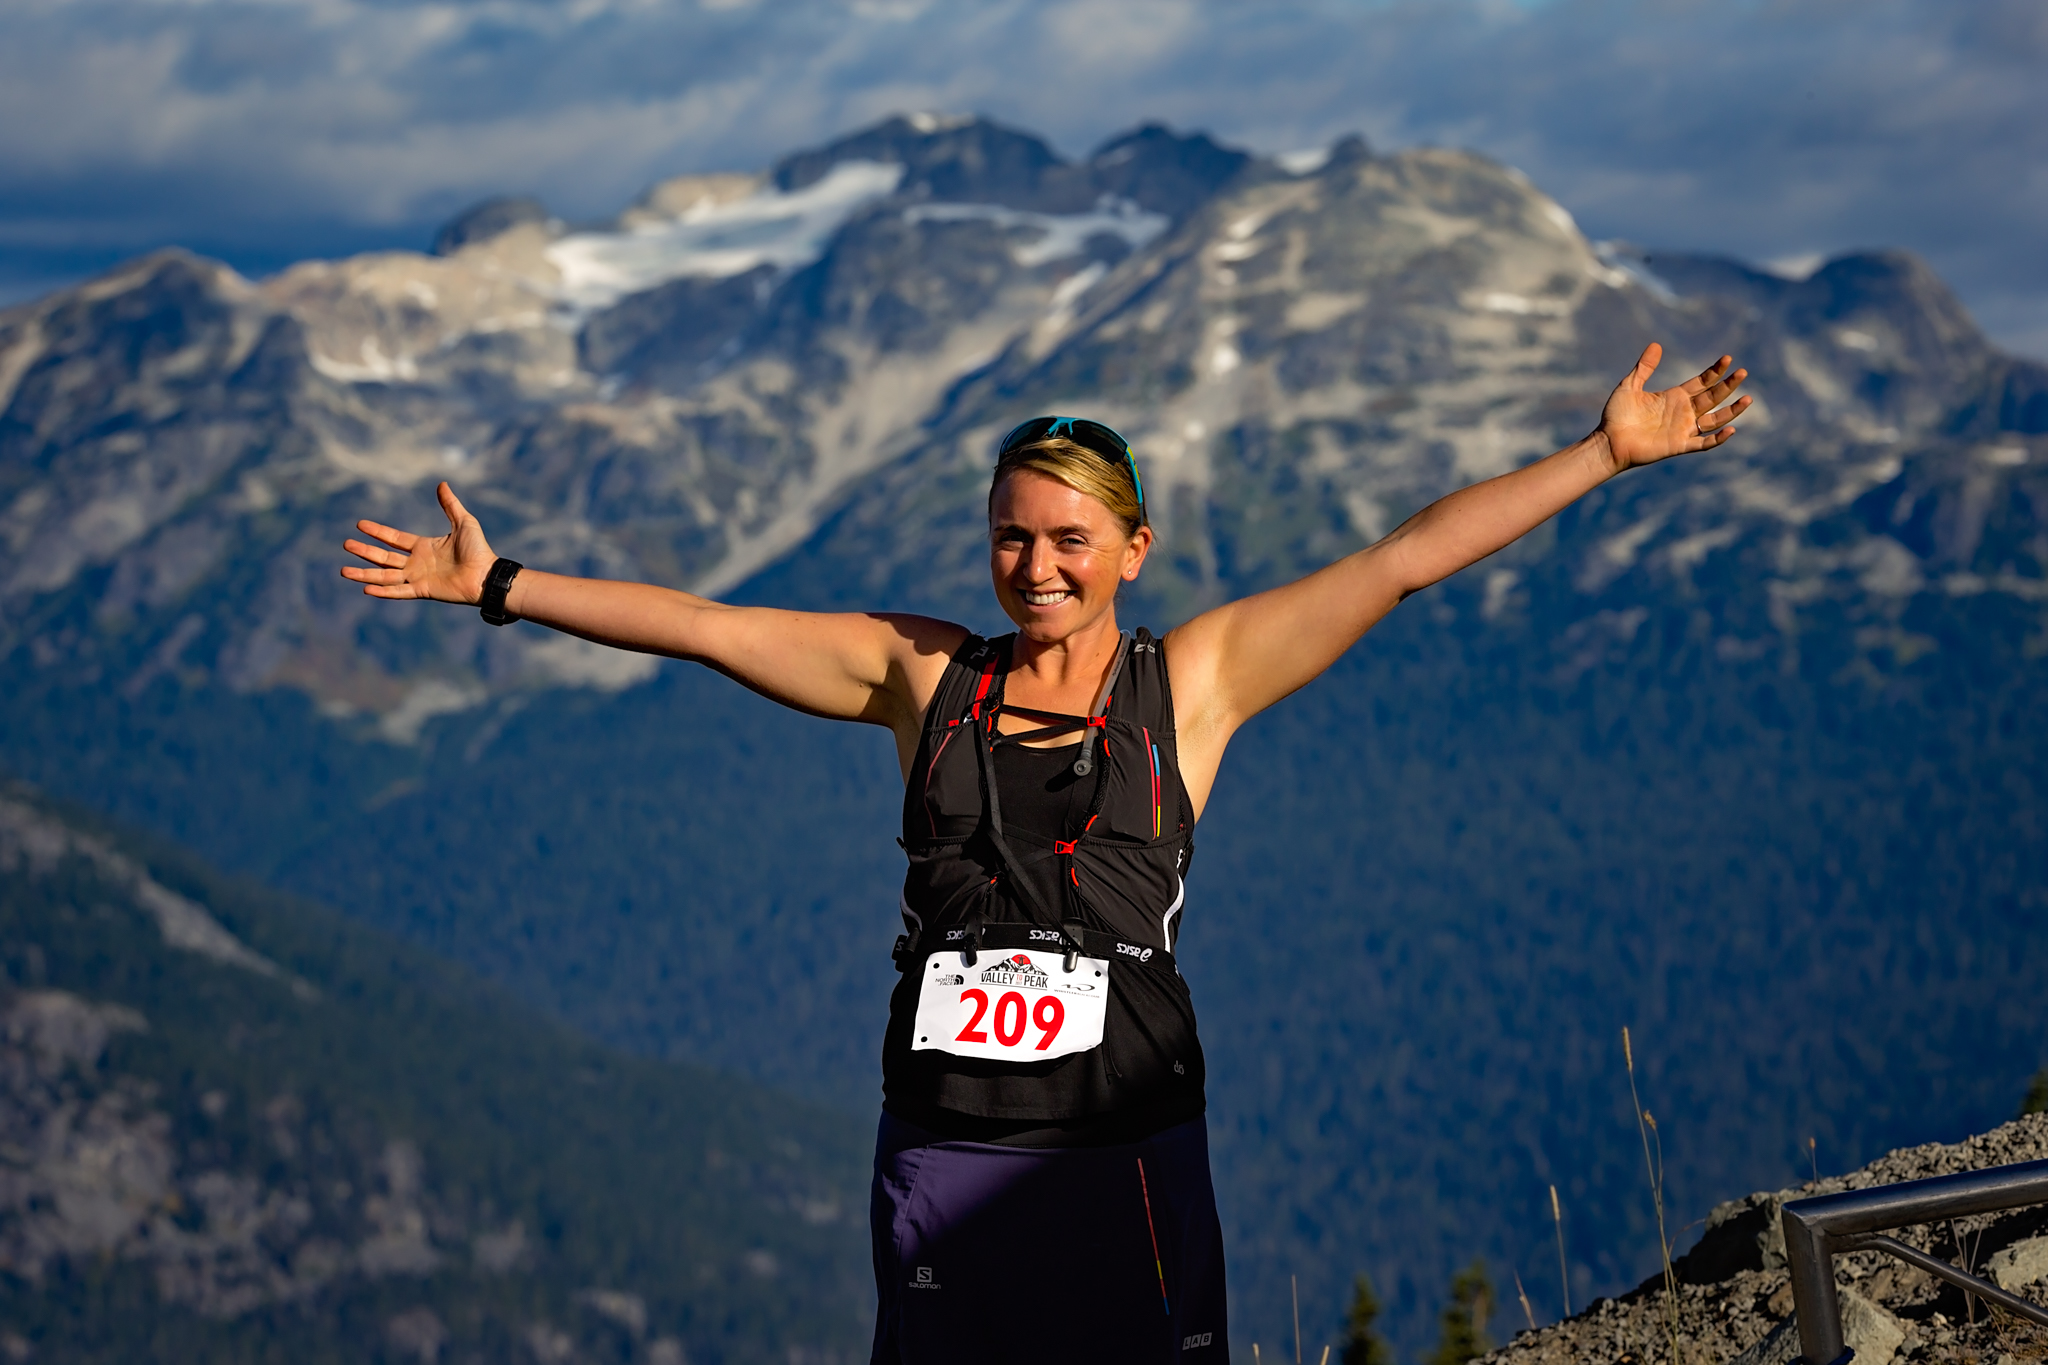 All smiles at the start of the Valley To Peak - Photo: Clint Trahan